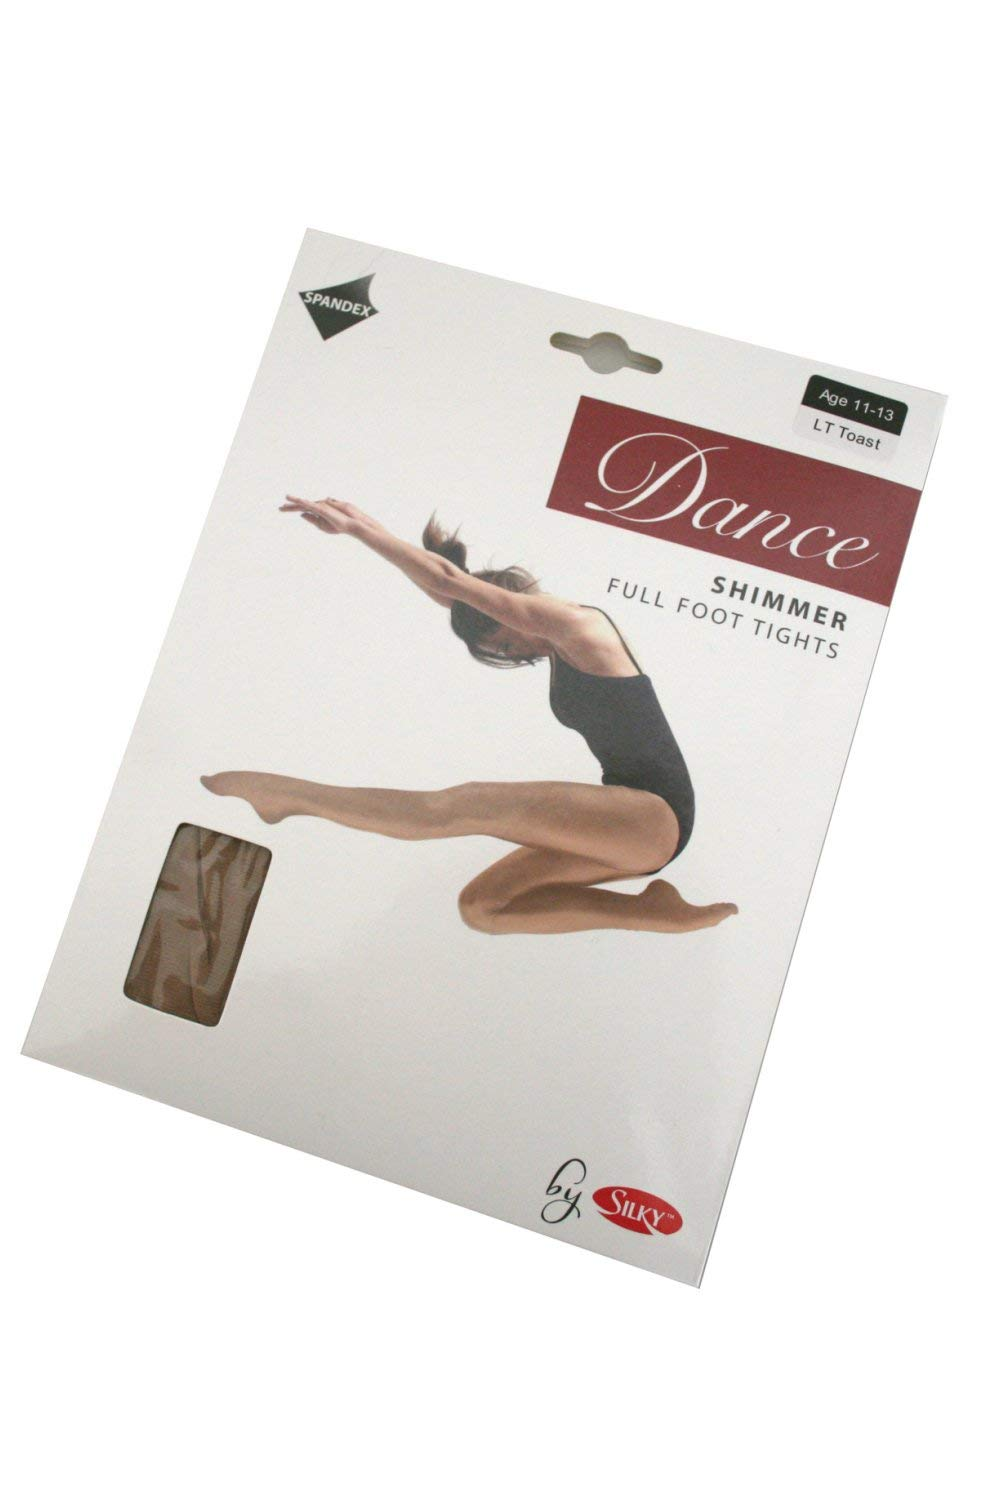 dd2a0167b67bd Silky Girl's 1 Pair Dance Shimmer Full Foot Tights 5-7 Years Light Toast:  Amazon.ca: Sports & Outdoors